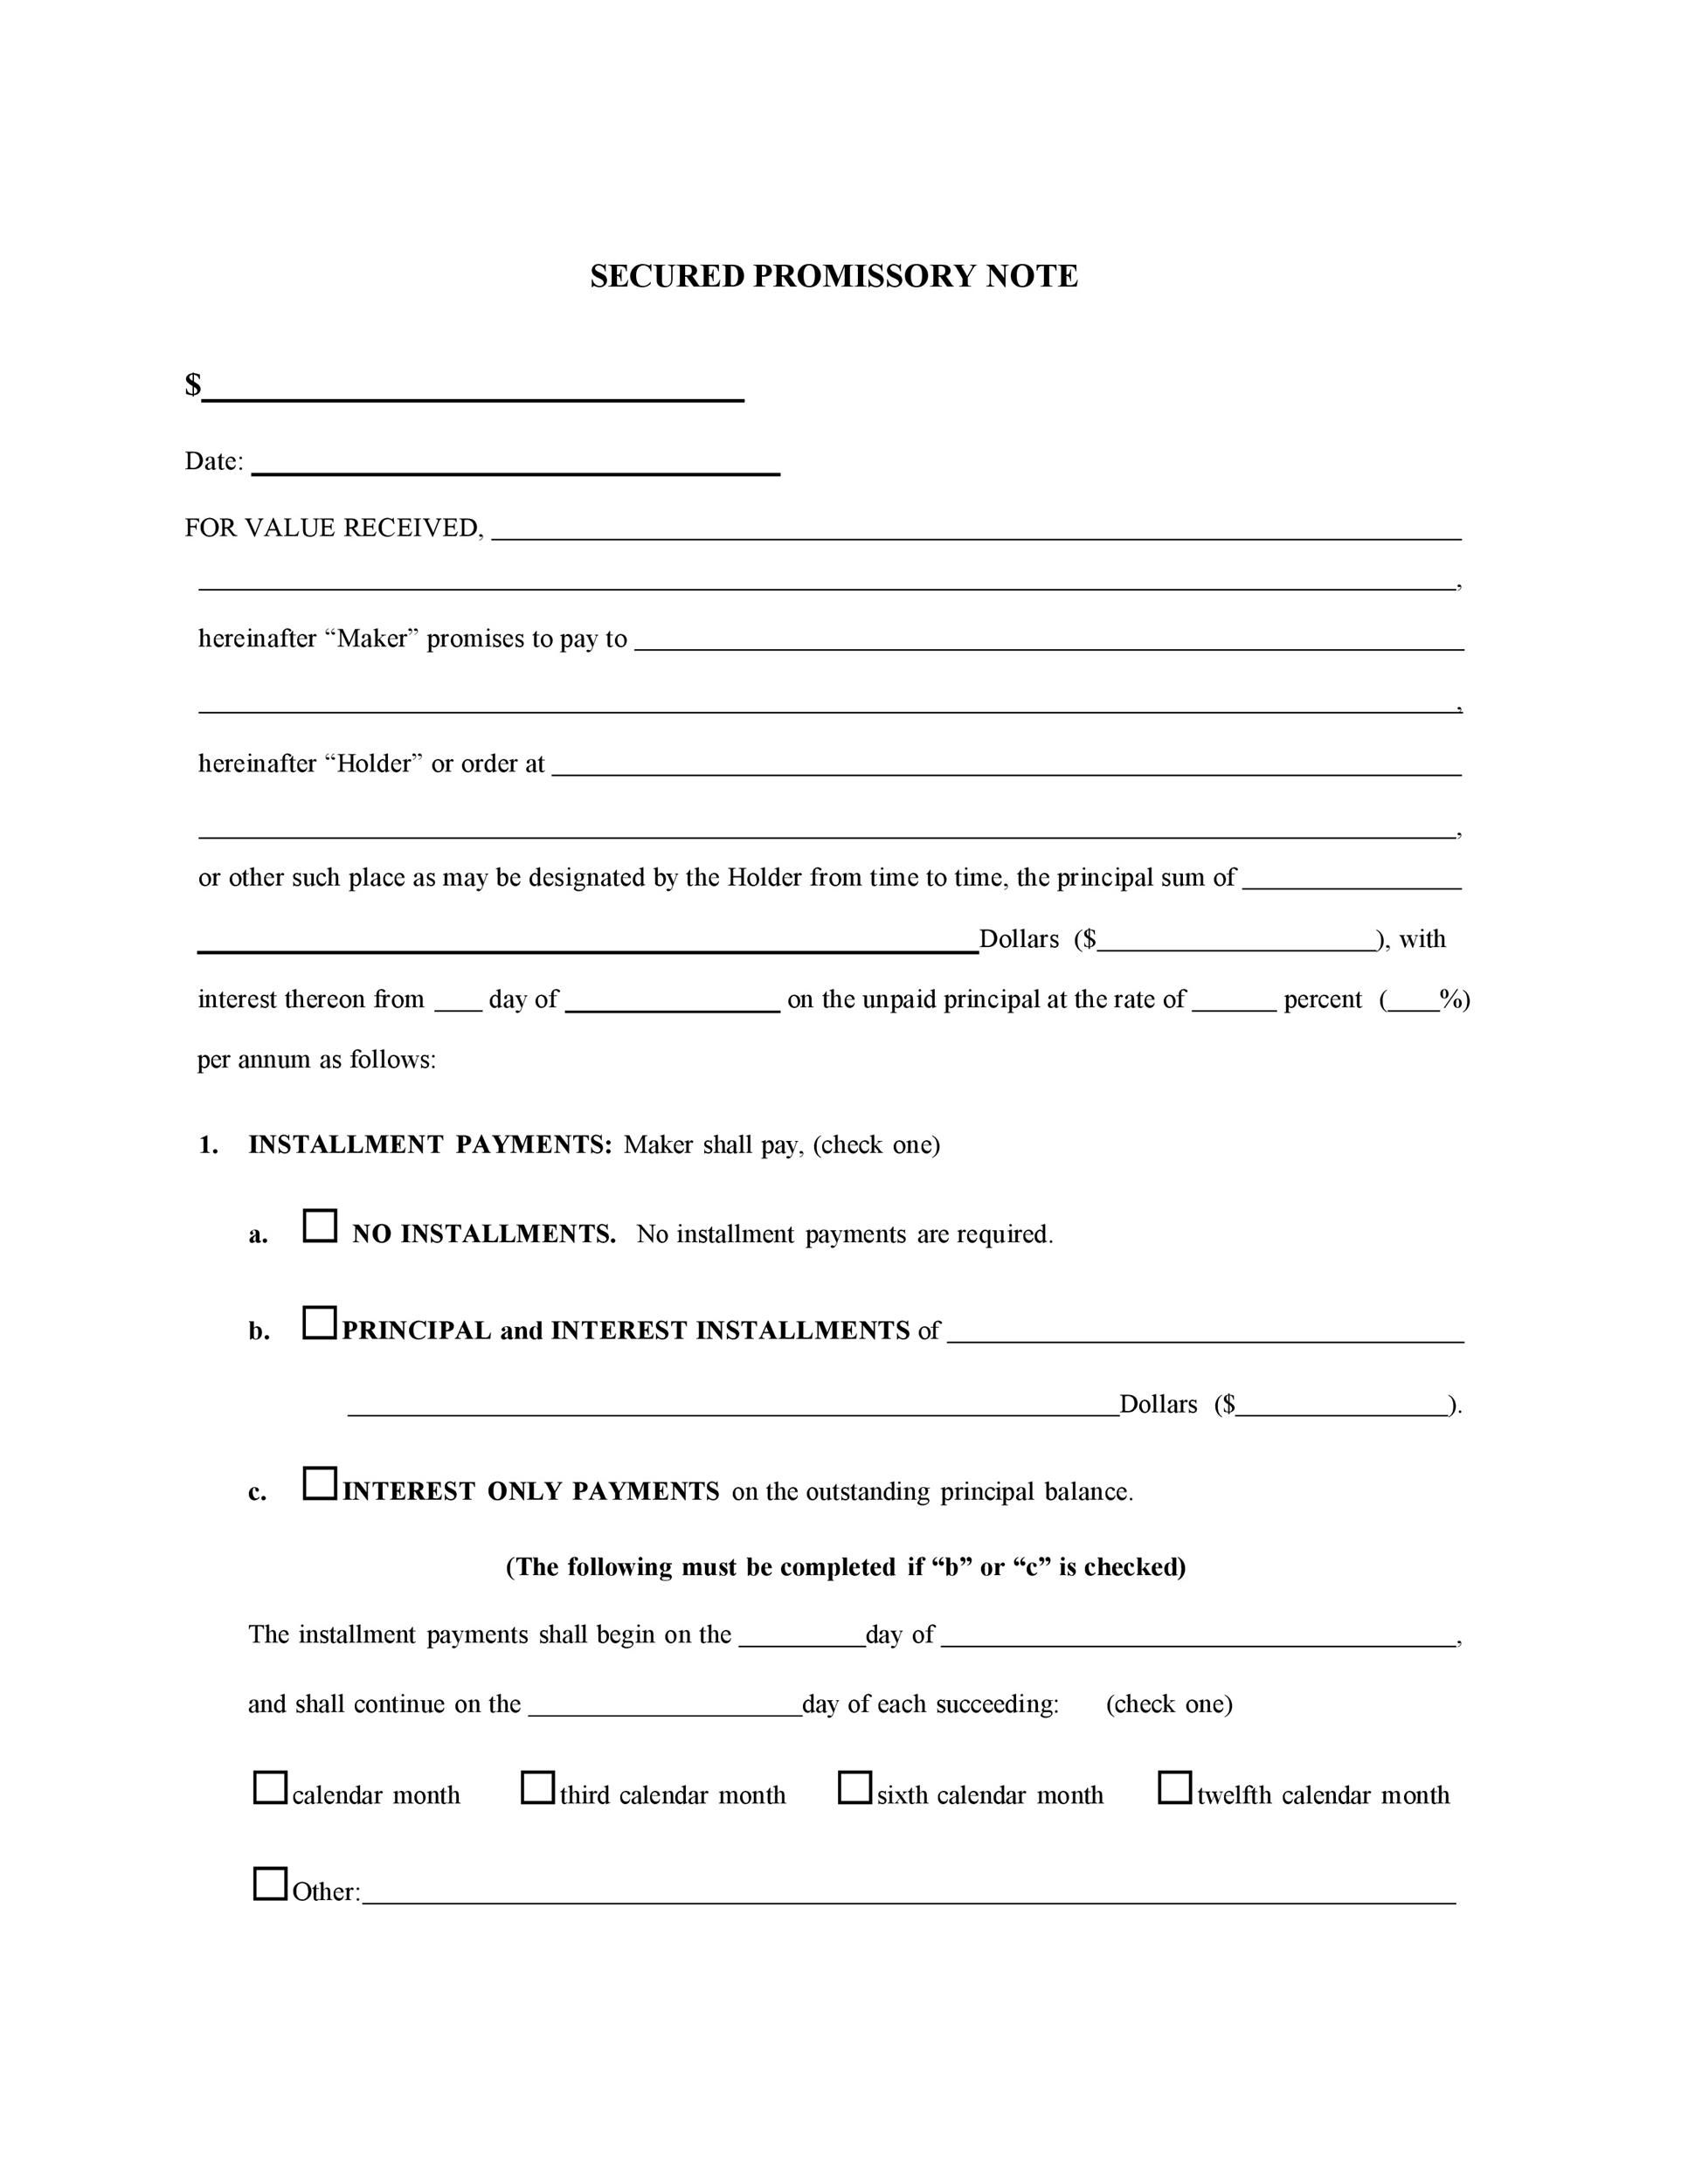 006 Fantastic Loan Promissory Note Template High Resolution  Family Busines Format For HandFull